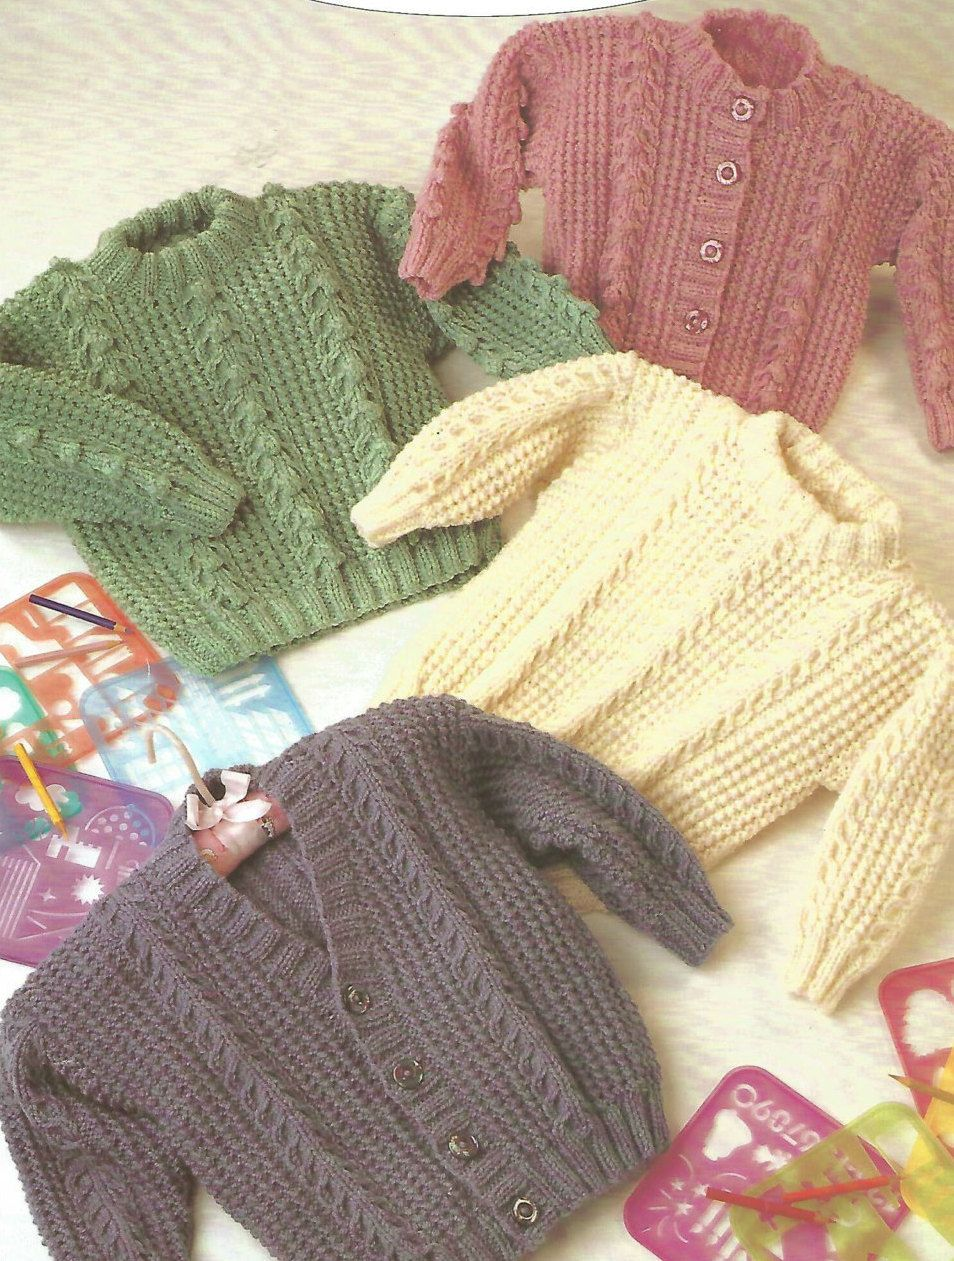 Knitting Sweater Designs For Baby : Knitting pattern babies children s aran fisherman ply